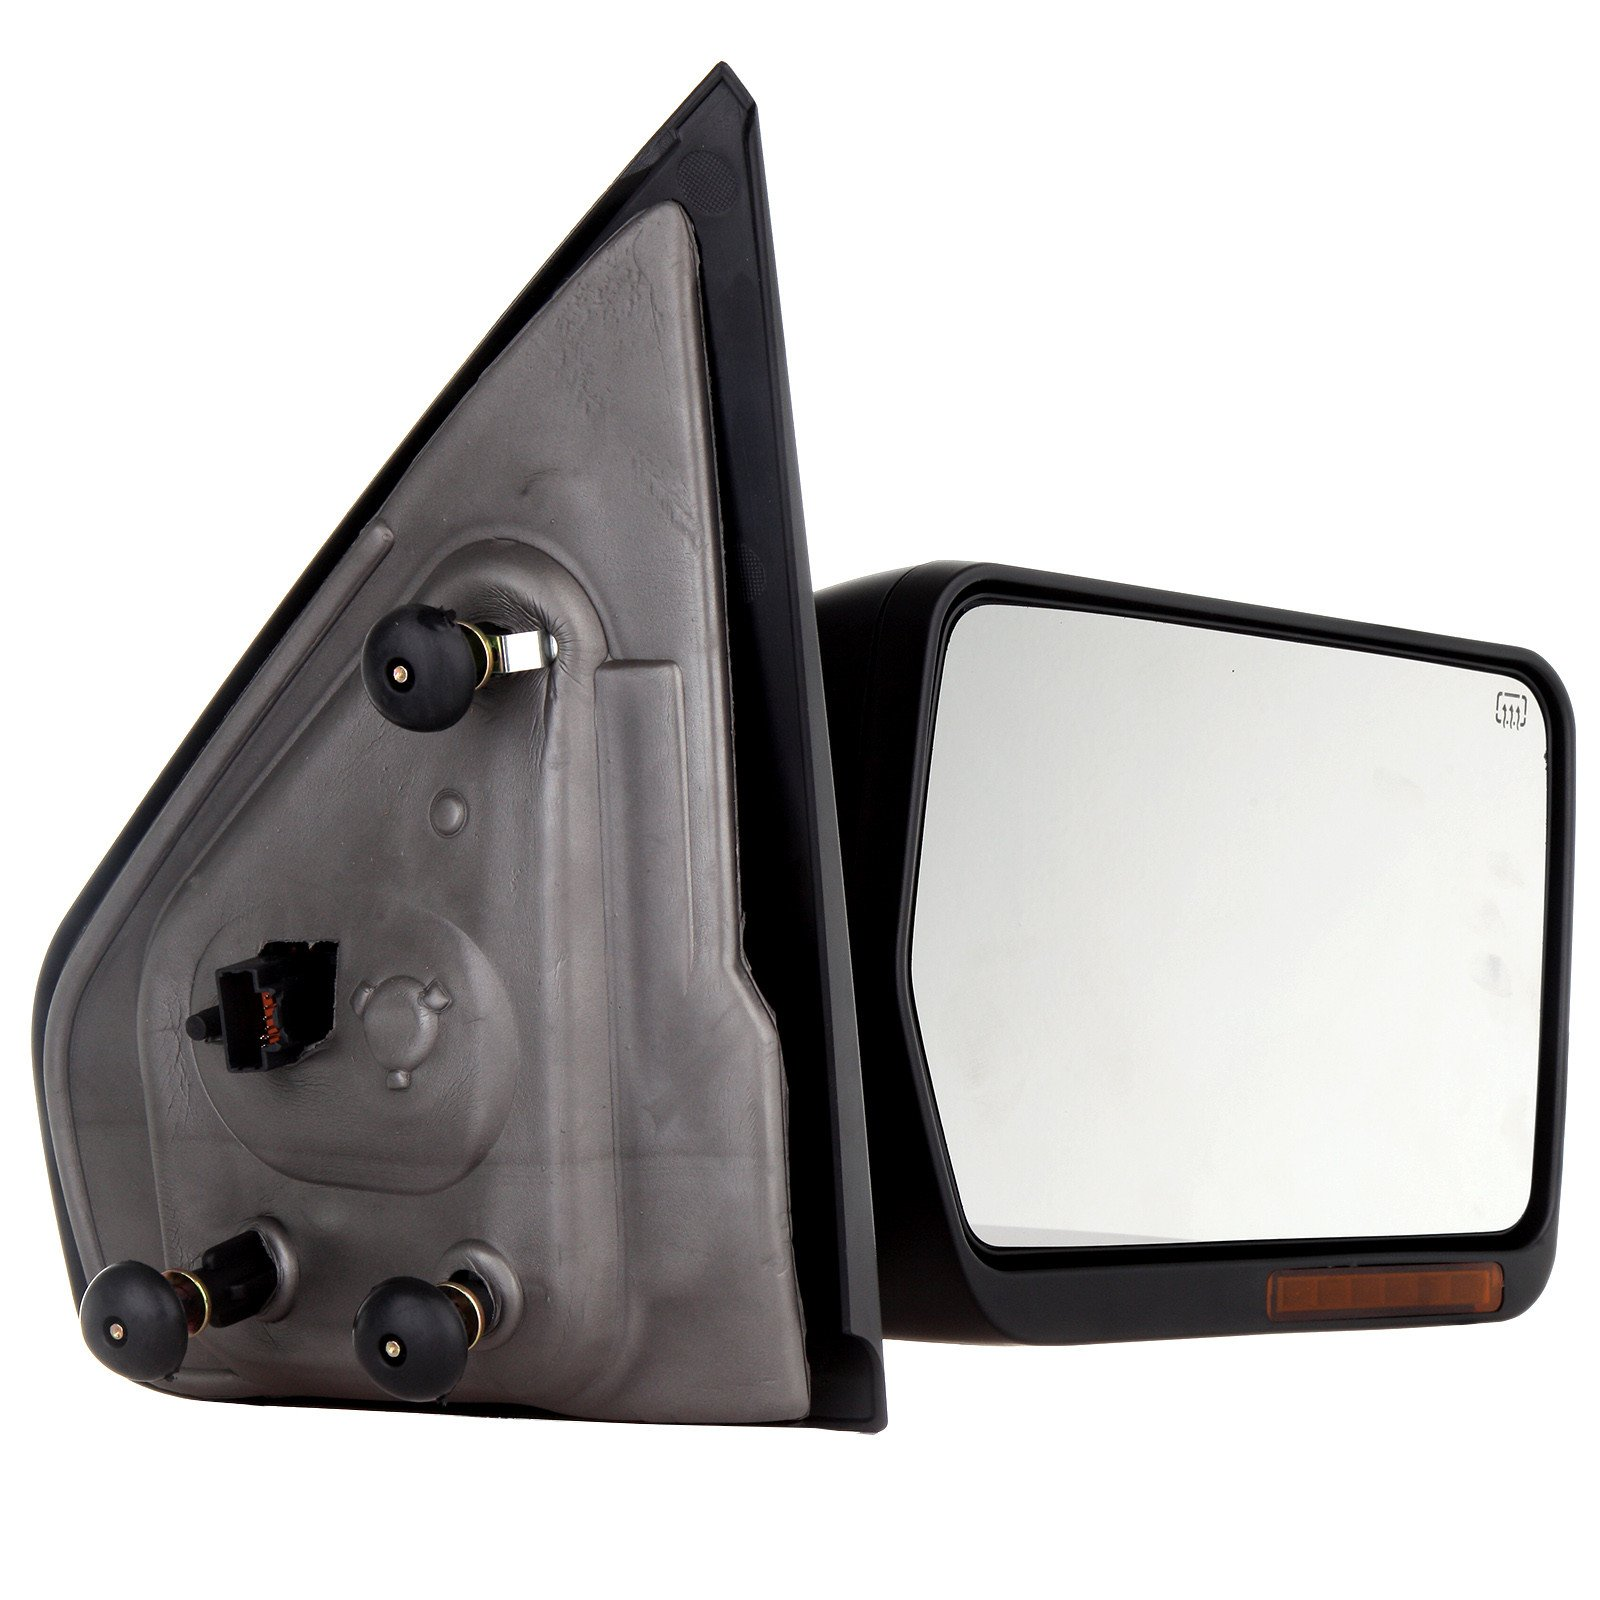 Towing Mirror For 2004-06 Ford F-150 Rear View Mirror Automotive Exterior Mirrors with Power Heated Front LED Signals (Passenger Side) by SCITOO (Image #4)